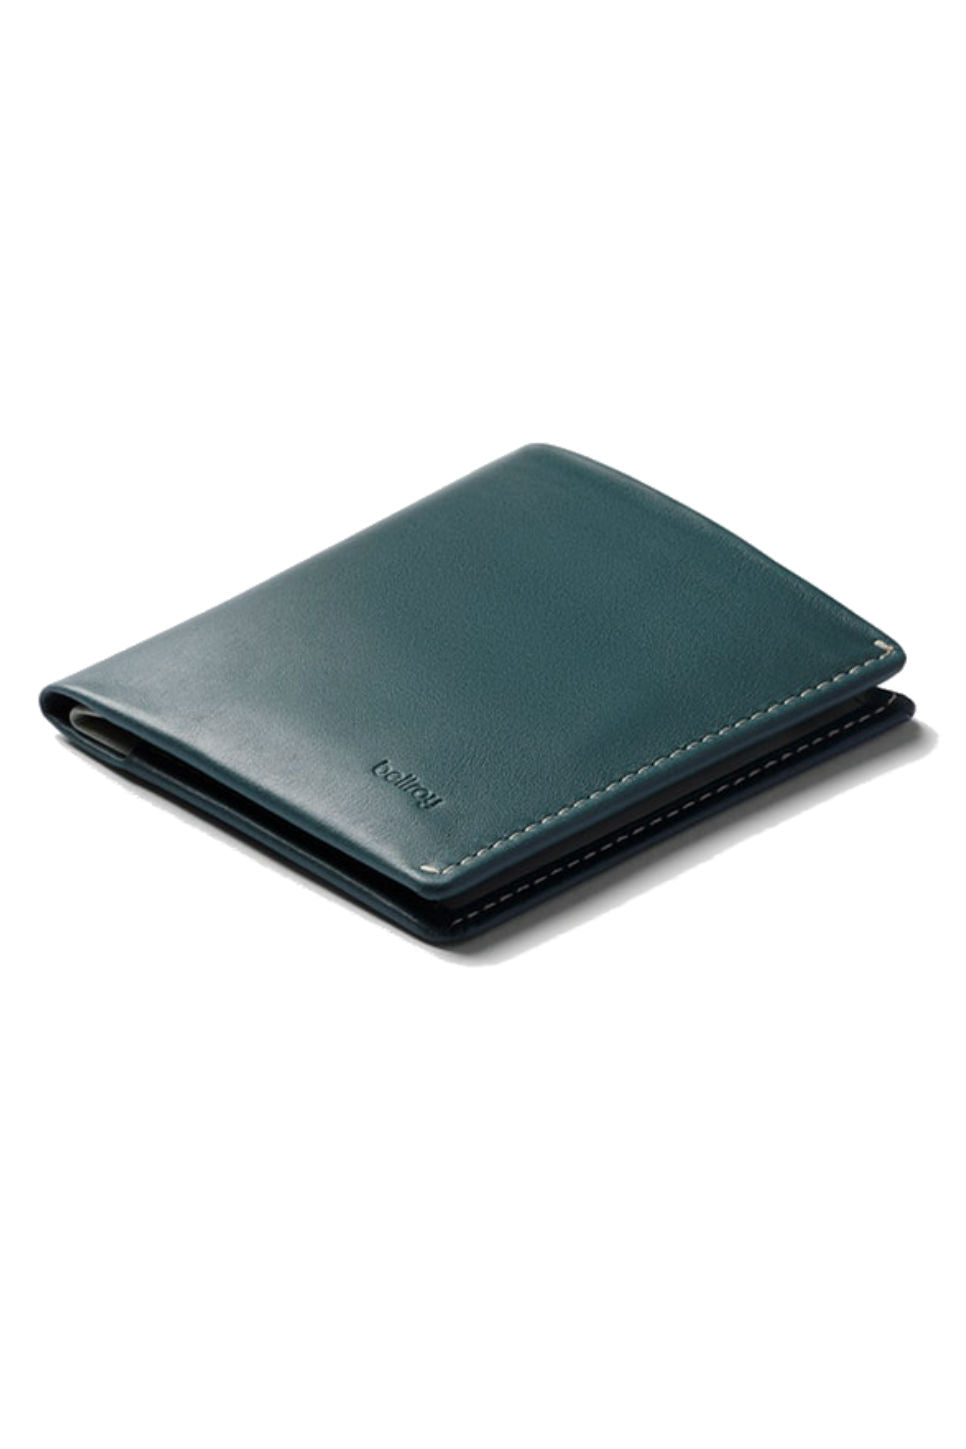 Bellroy - RFID Note Sleeve - Teal